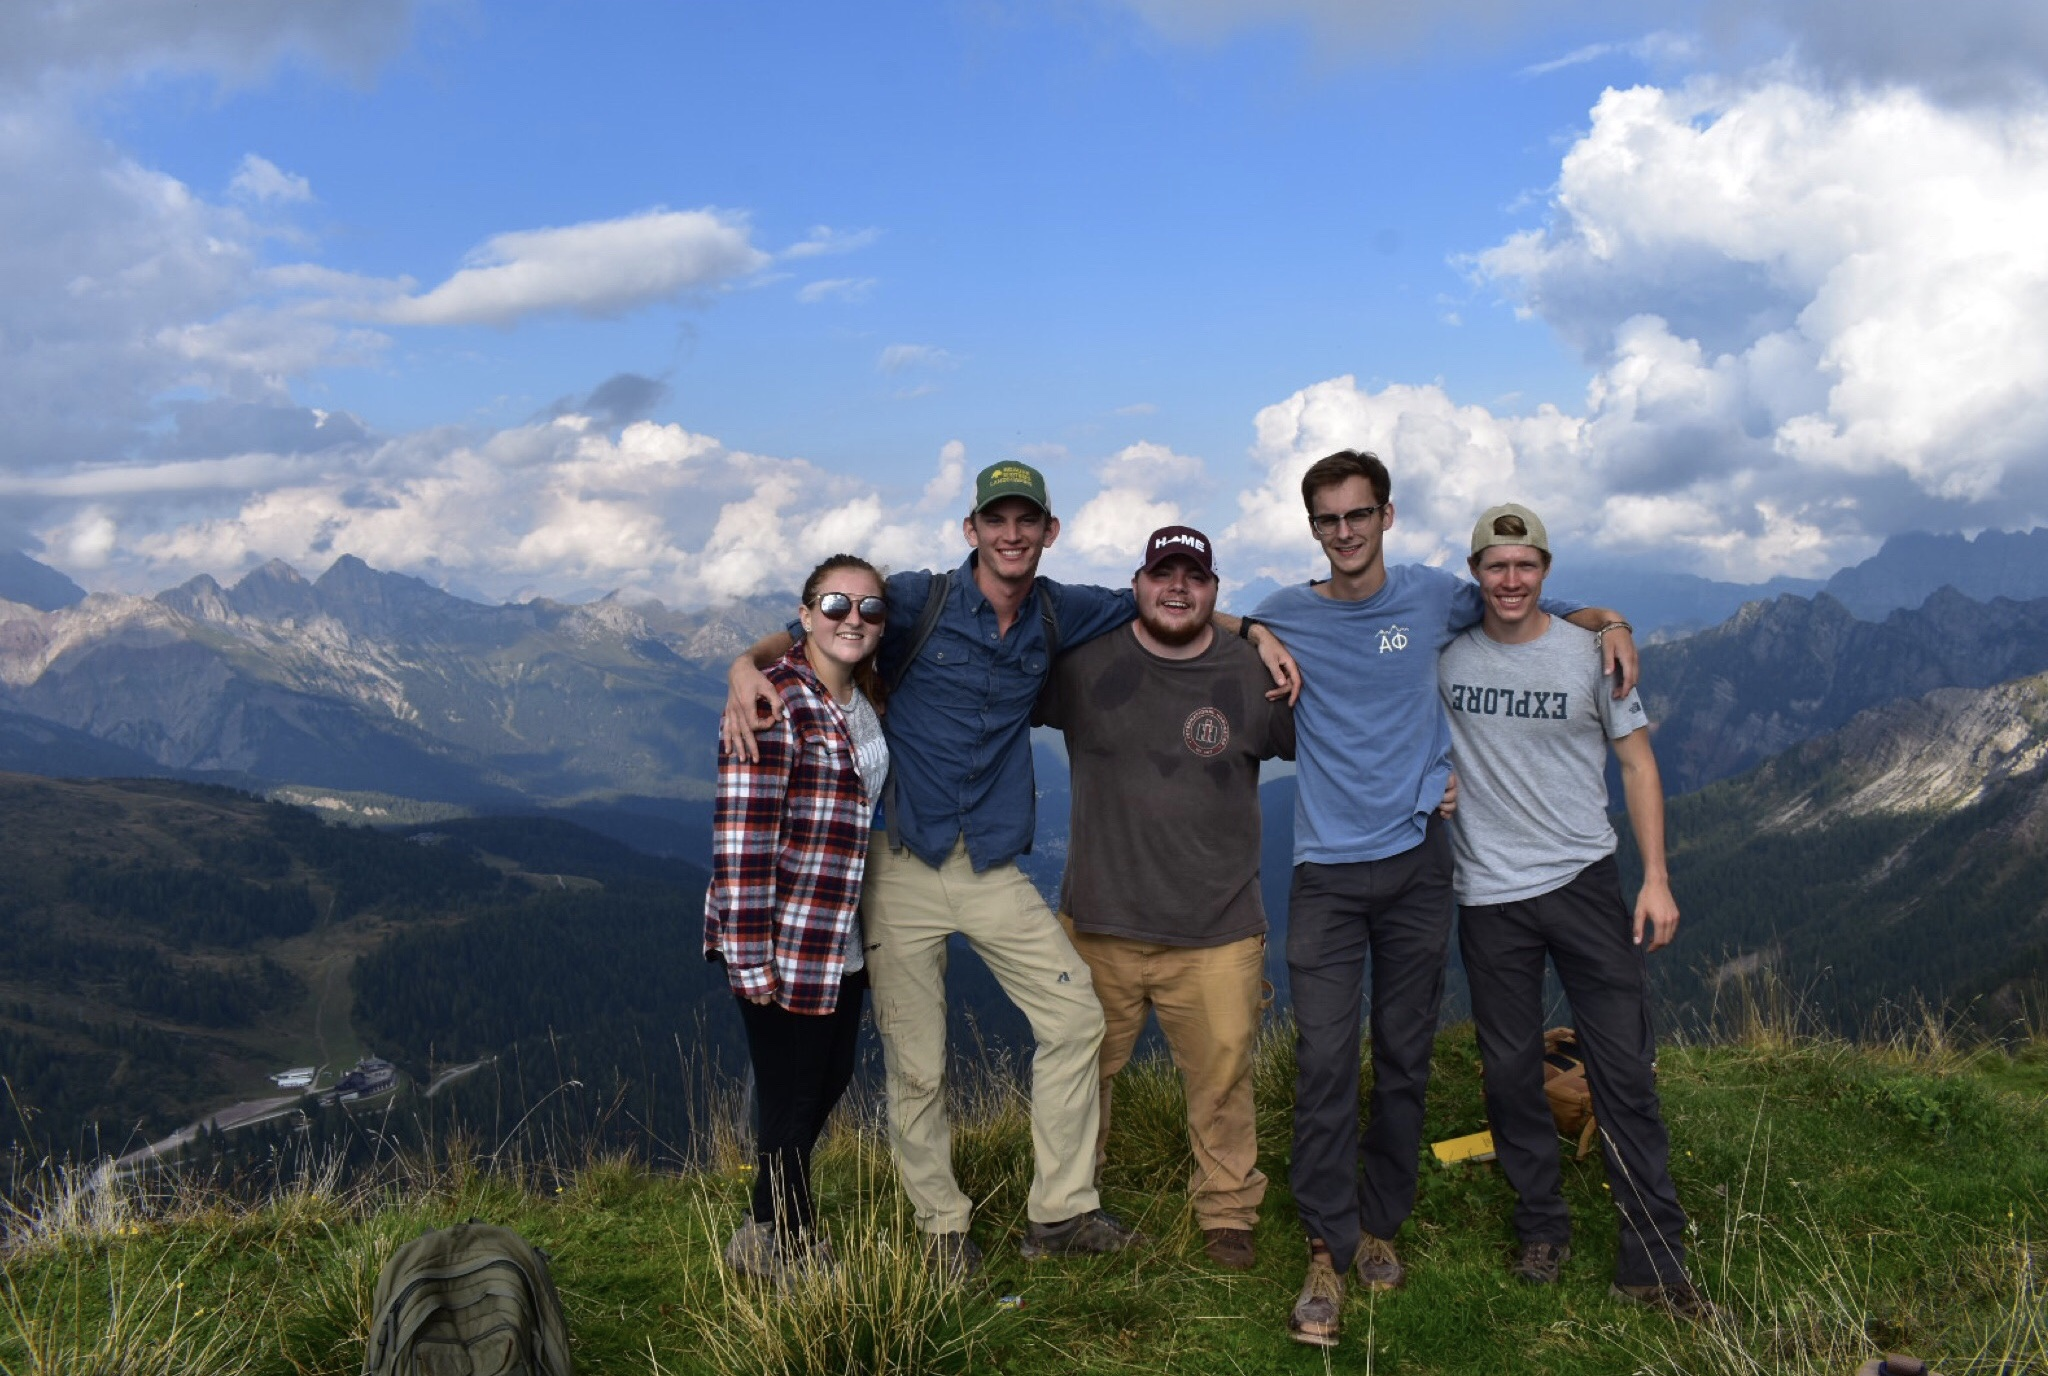 Shelly Worek spent a semester studying abroad in Switzerland.